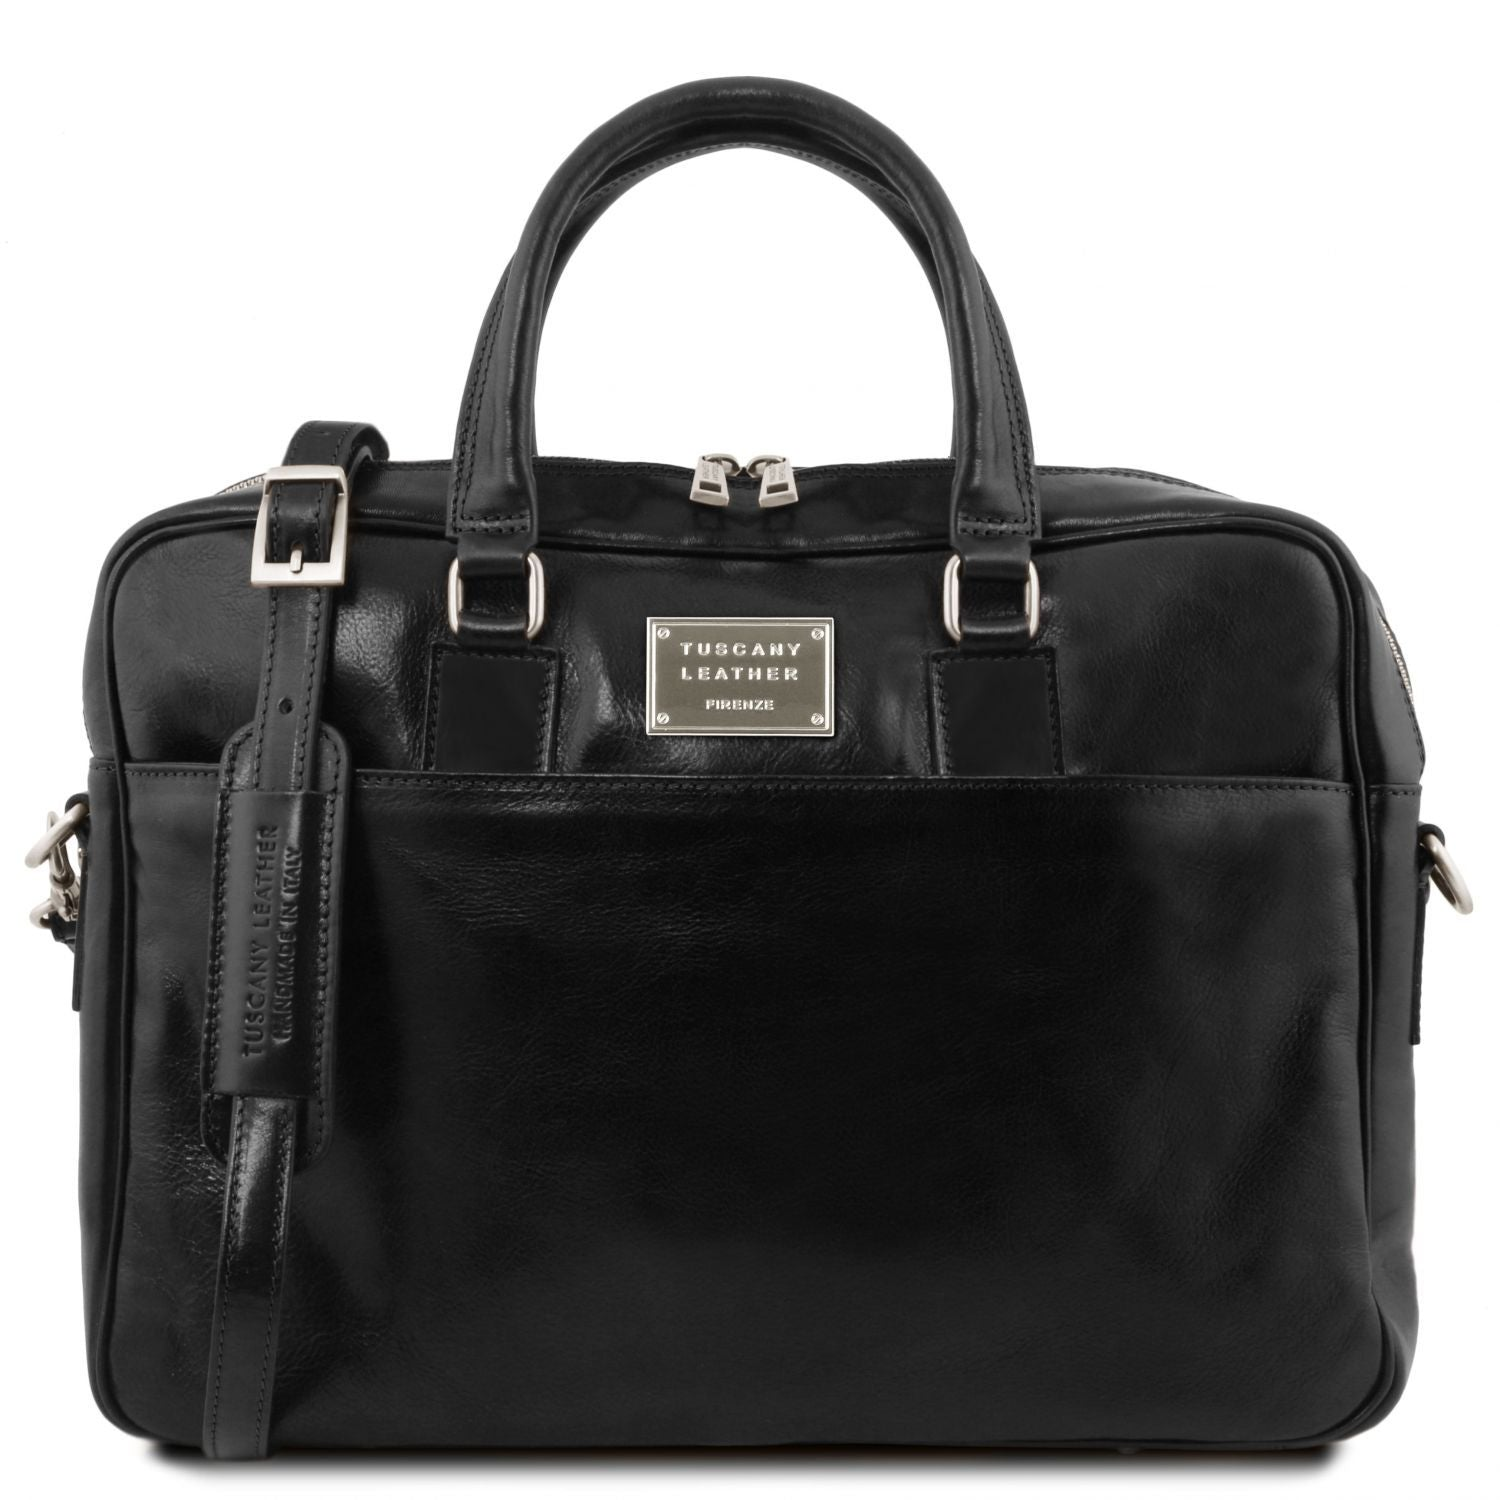 Urbino - Leather laptop briefcase 2 compartments with front pocket (TL141894) - Leather laptop bags | DILUSSOBAGS